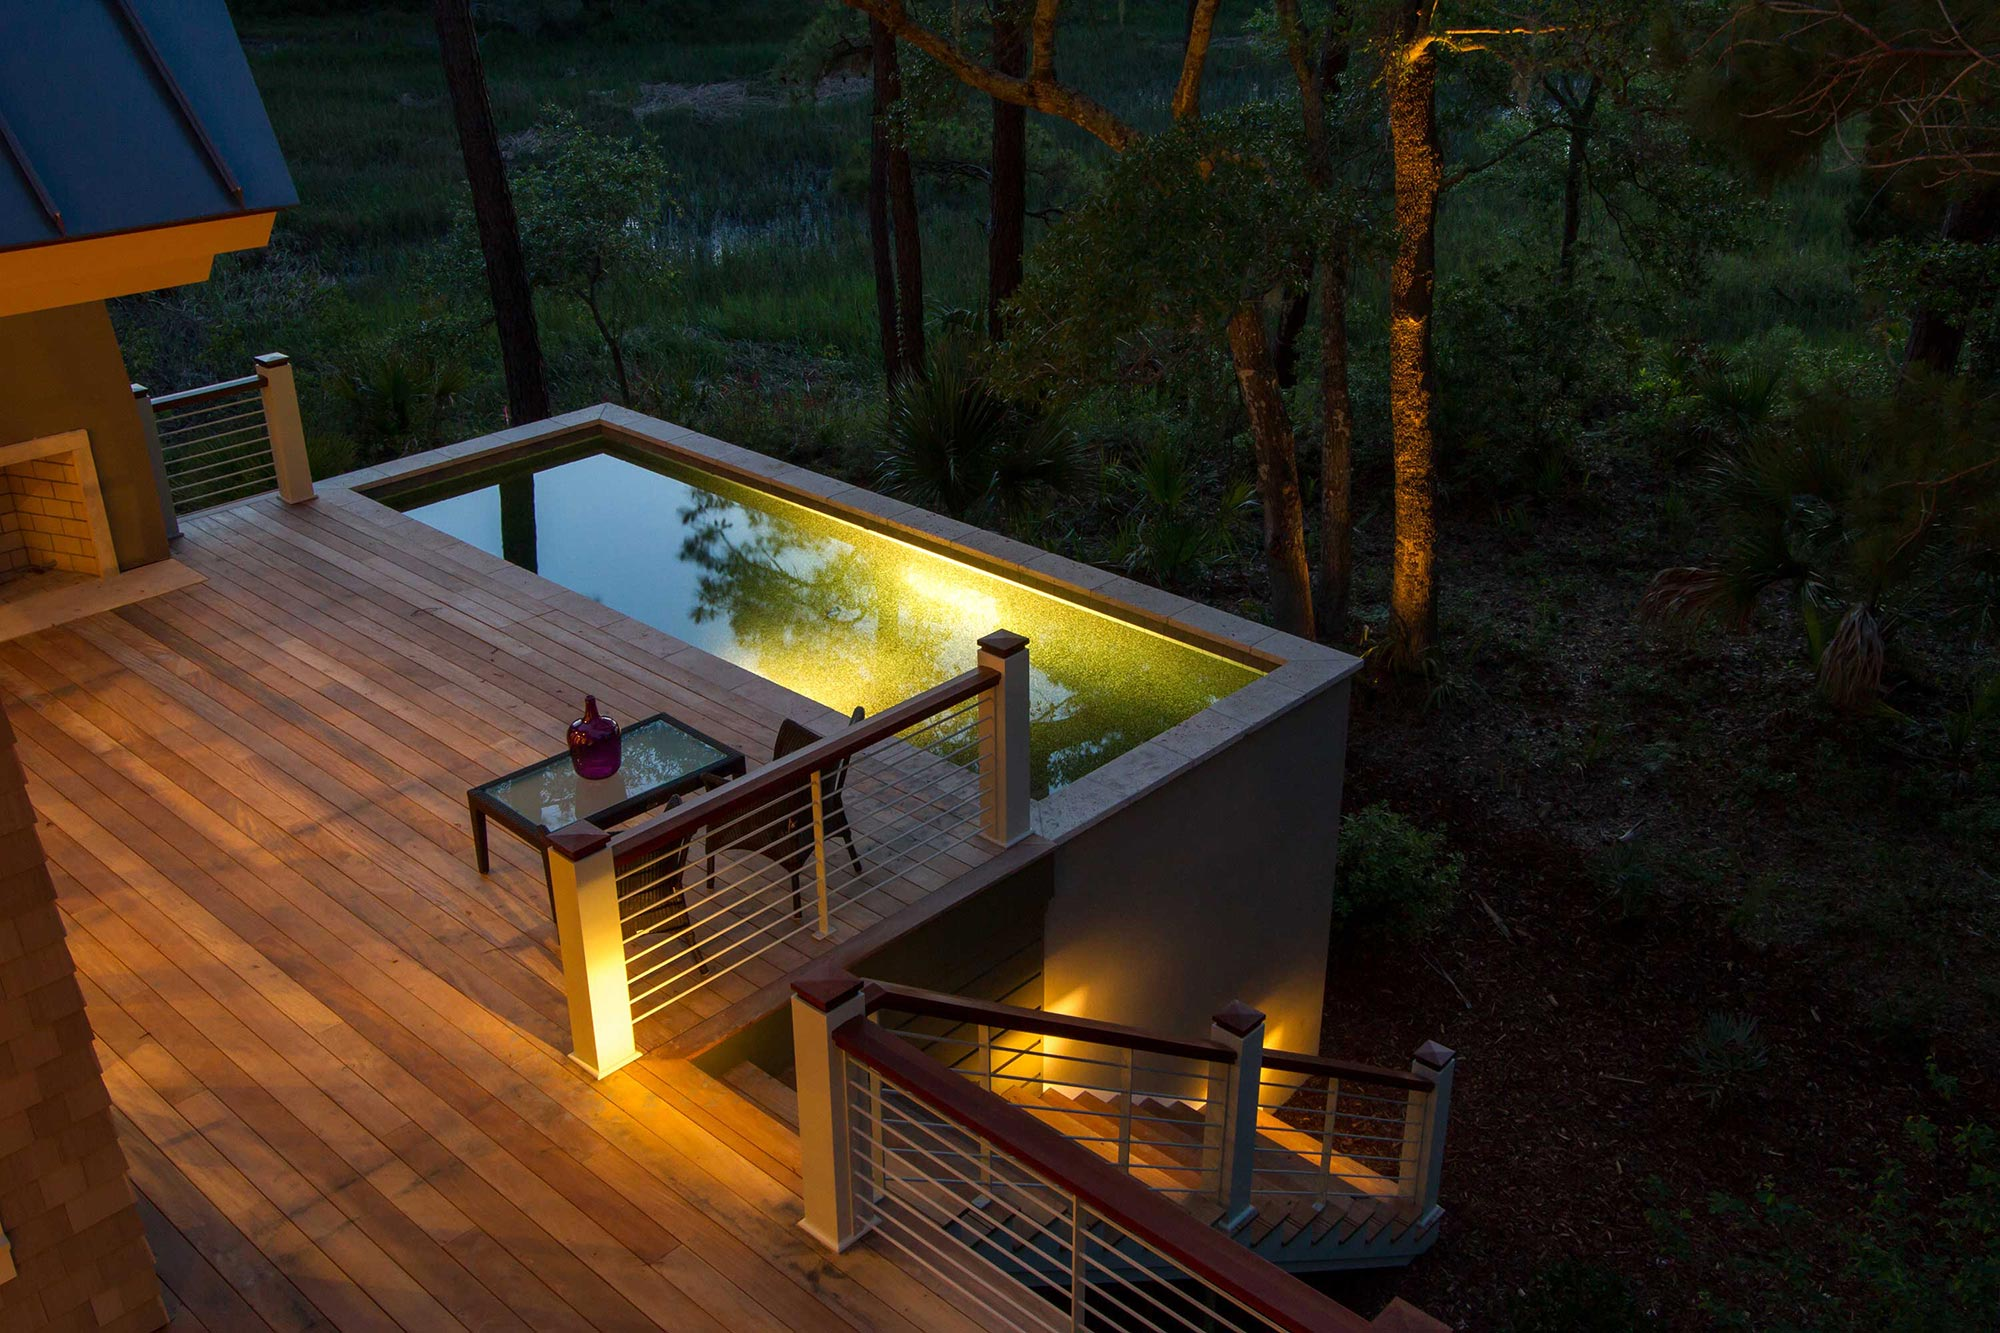 Elevated Pool, a unique swimming pool design